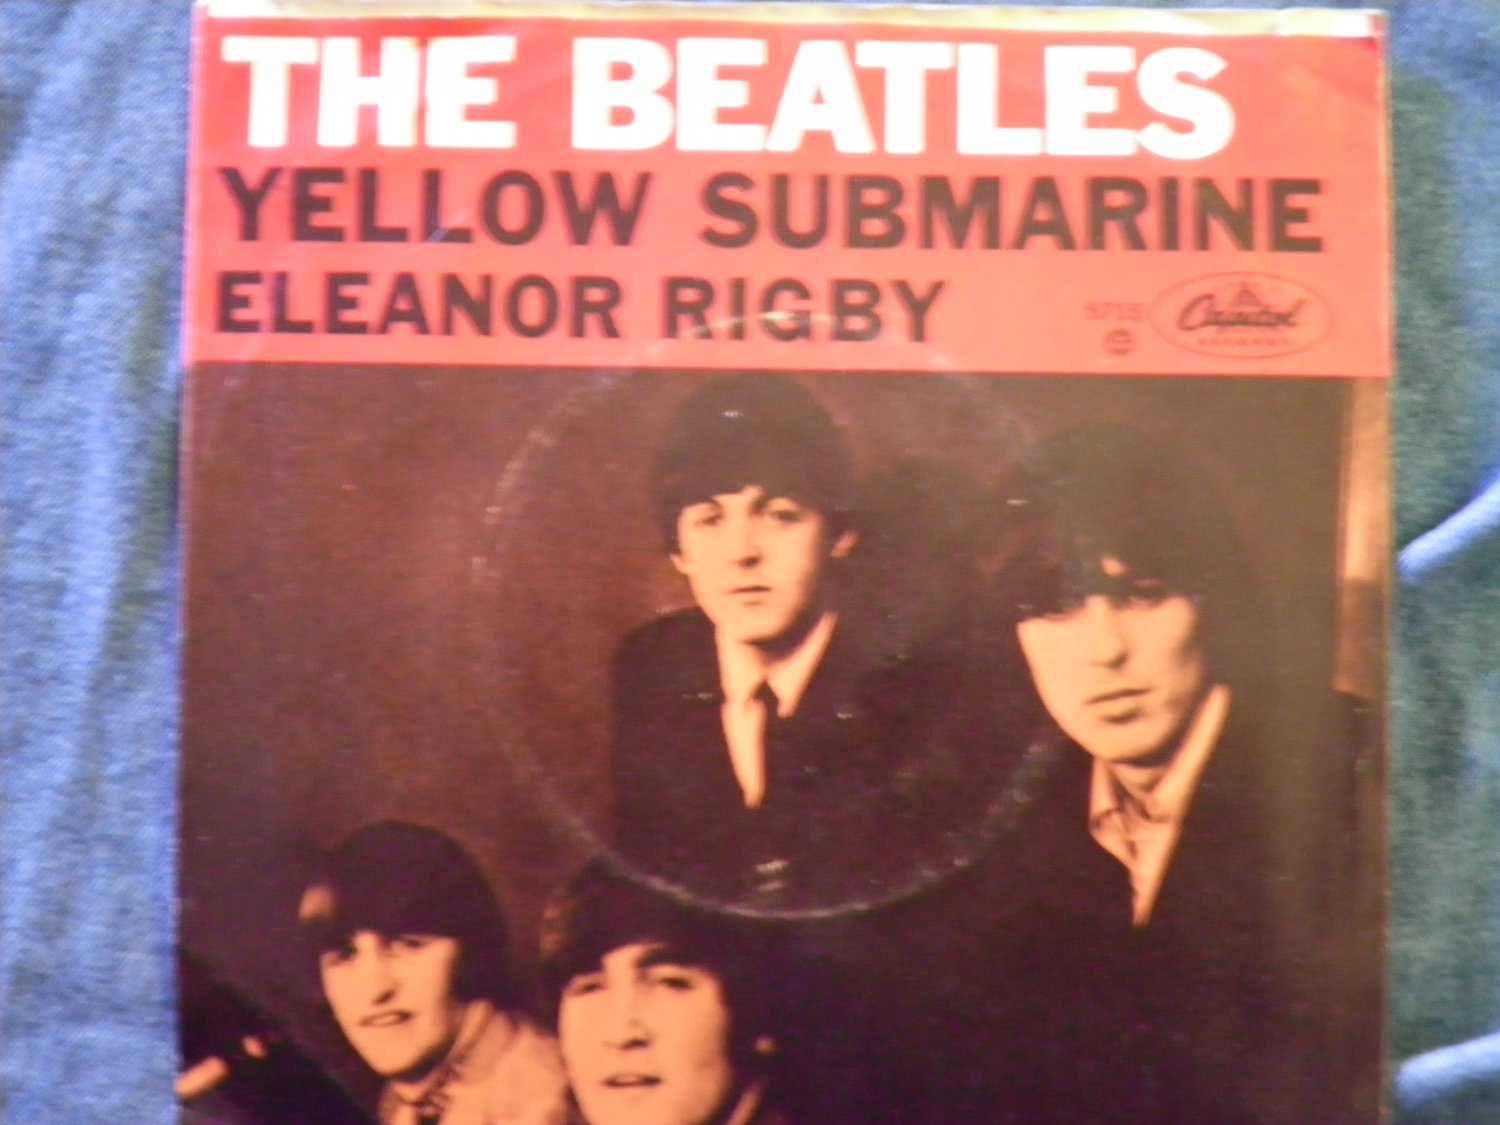 45 THE BEATLES Yellow Submarine b/w Eleanor Rigby vinyl record W/PICTURE SLEEVE